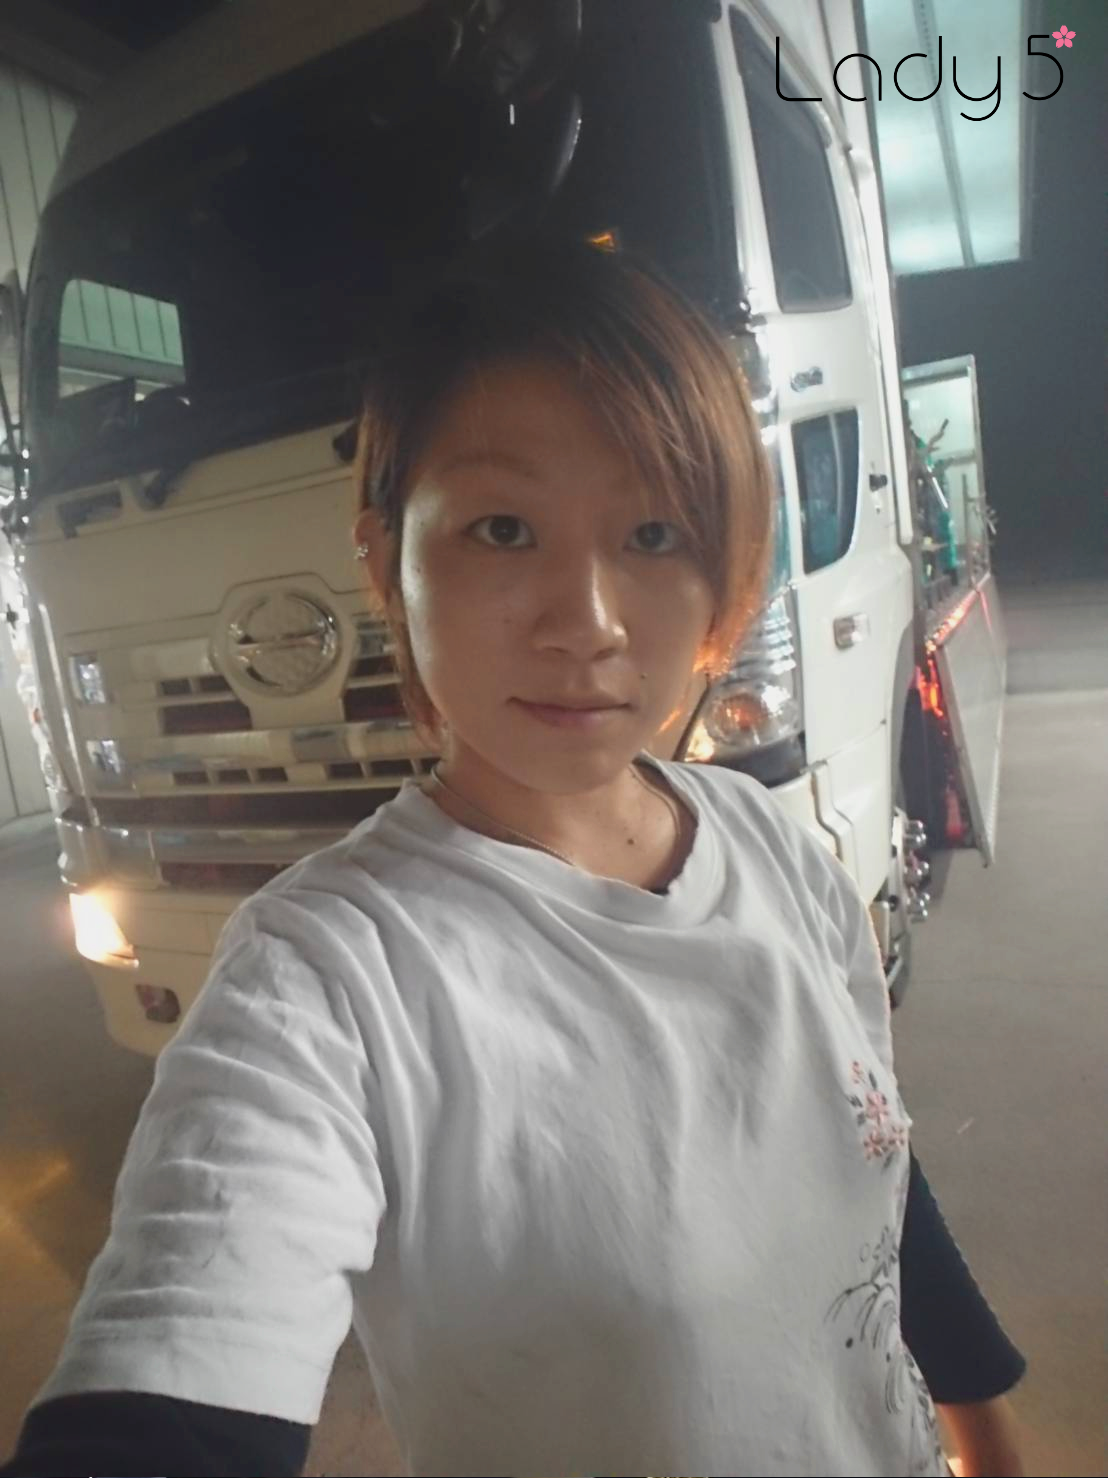 trucklady5_interview_akinee5